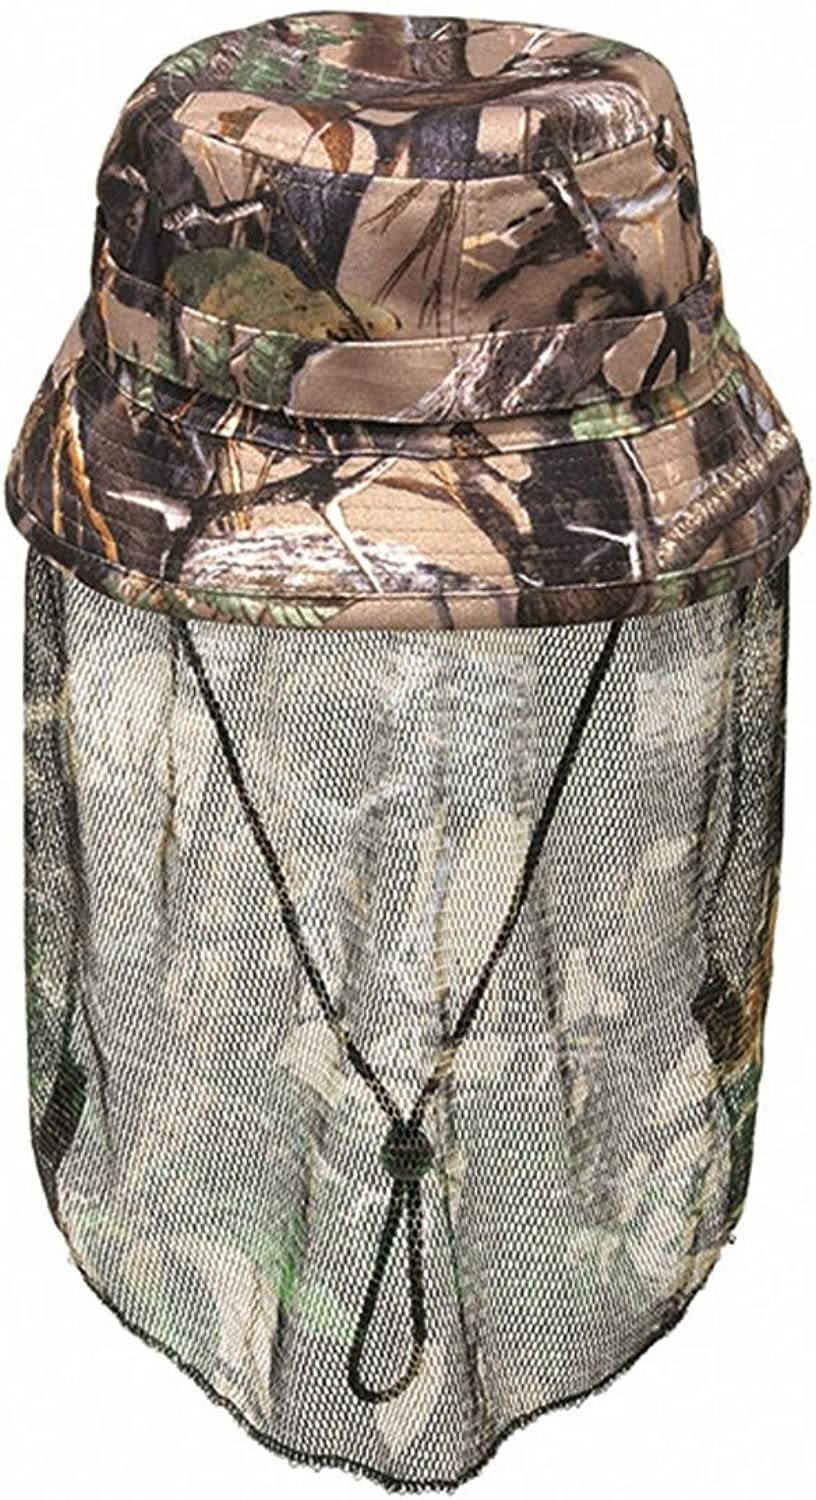 Ridgeline Veiled Hat One Size Camo